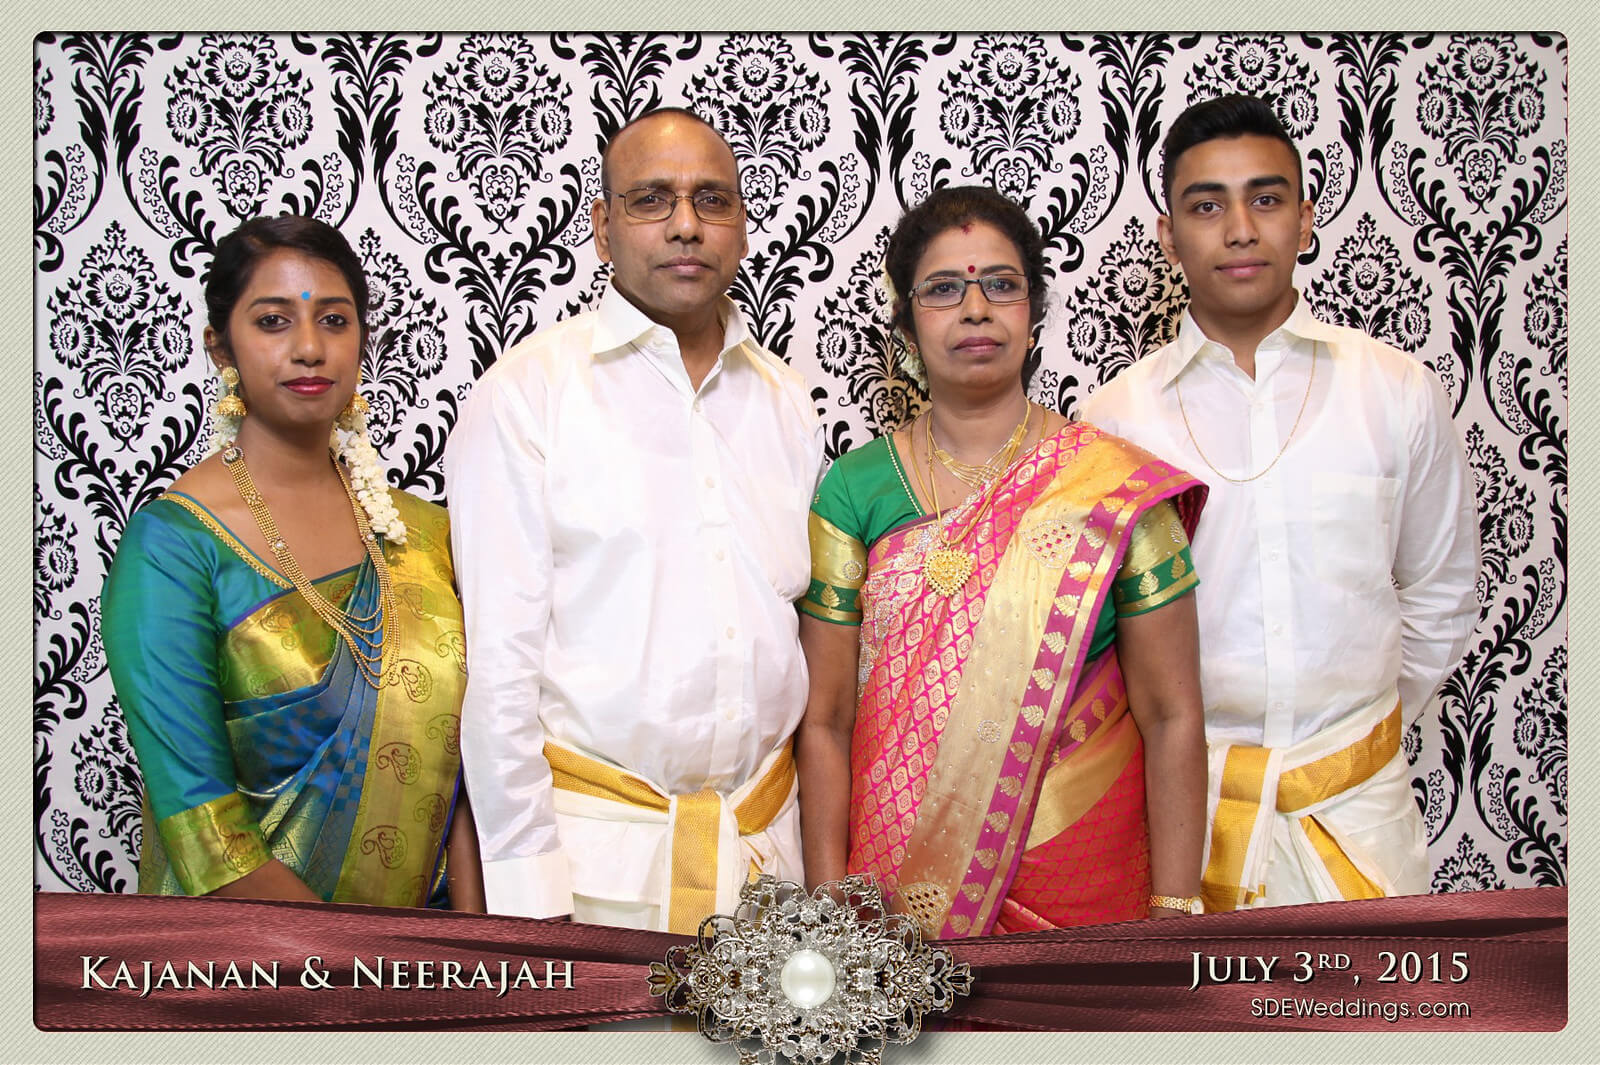 Toronto Scarborough Convention Centre Hindu Wedding Photo Booth Rental 2